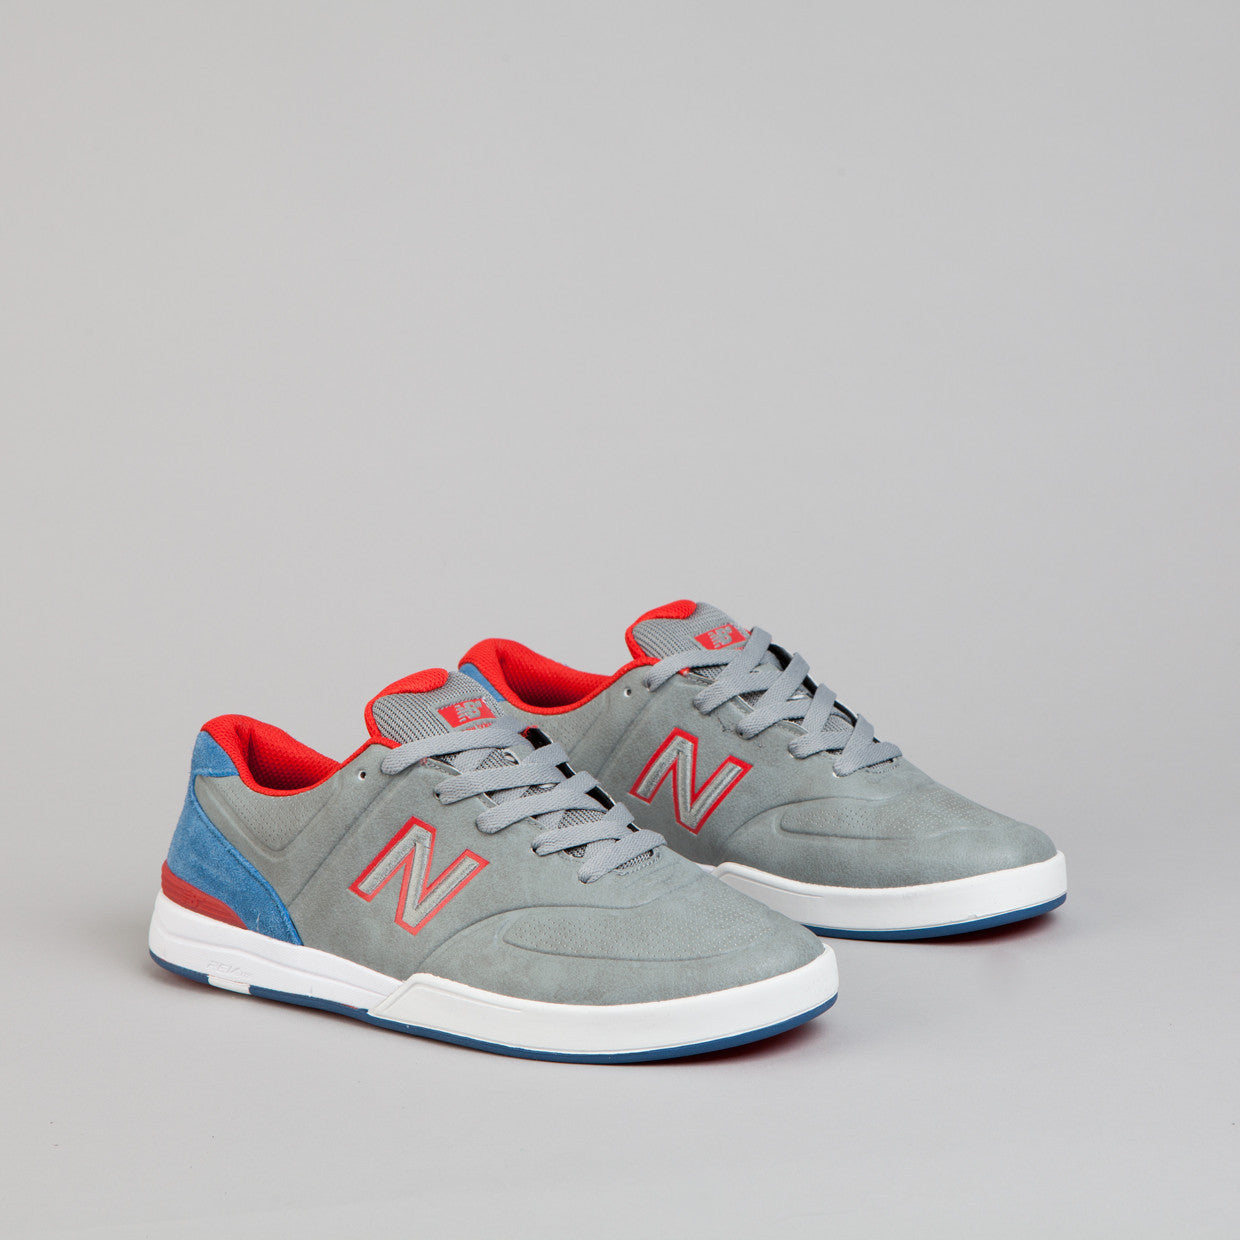 New Balance Numeric Logan 637 Shoes -  Medium Grey / Federal Blue